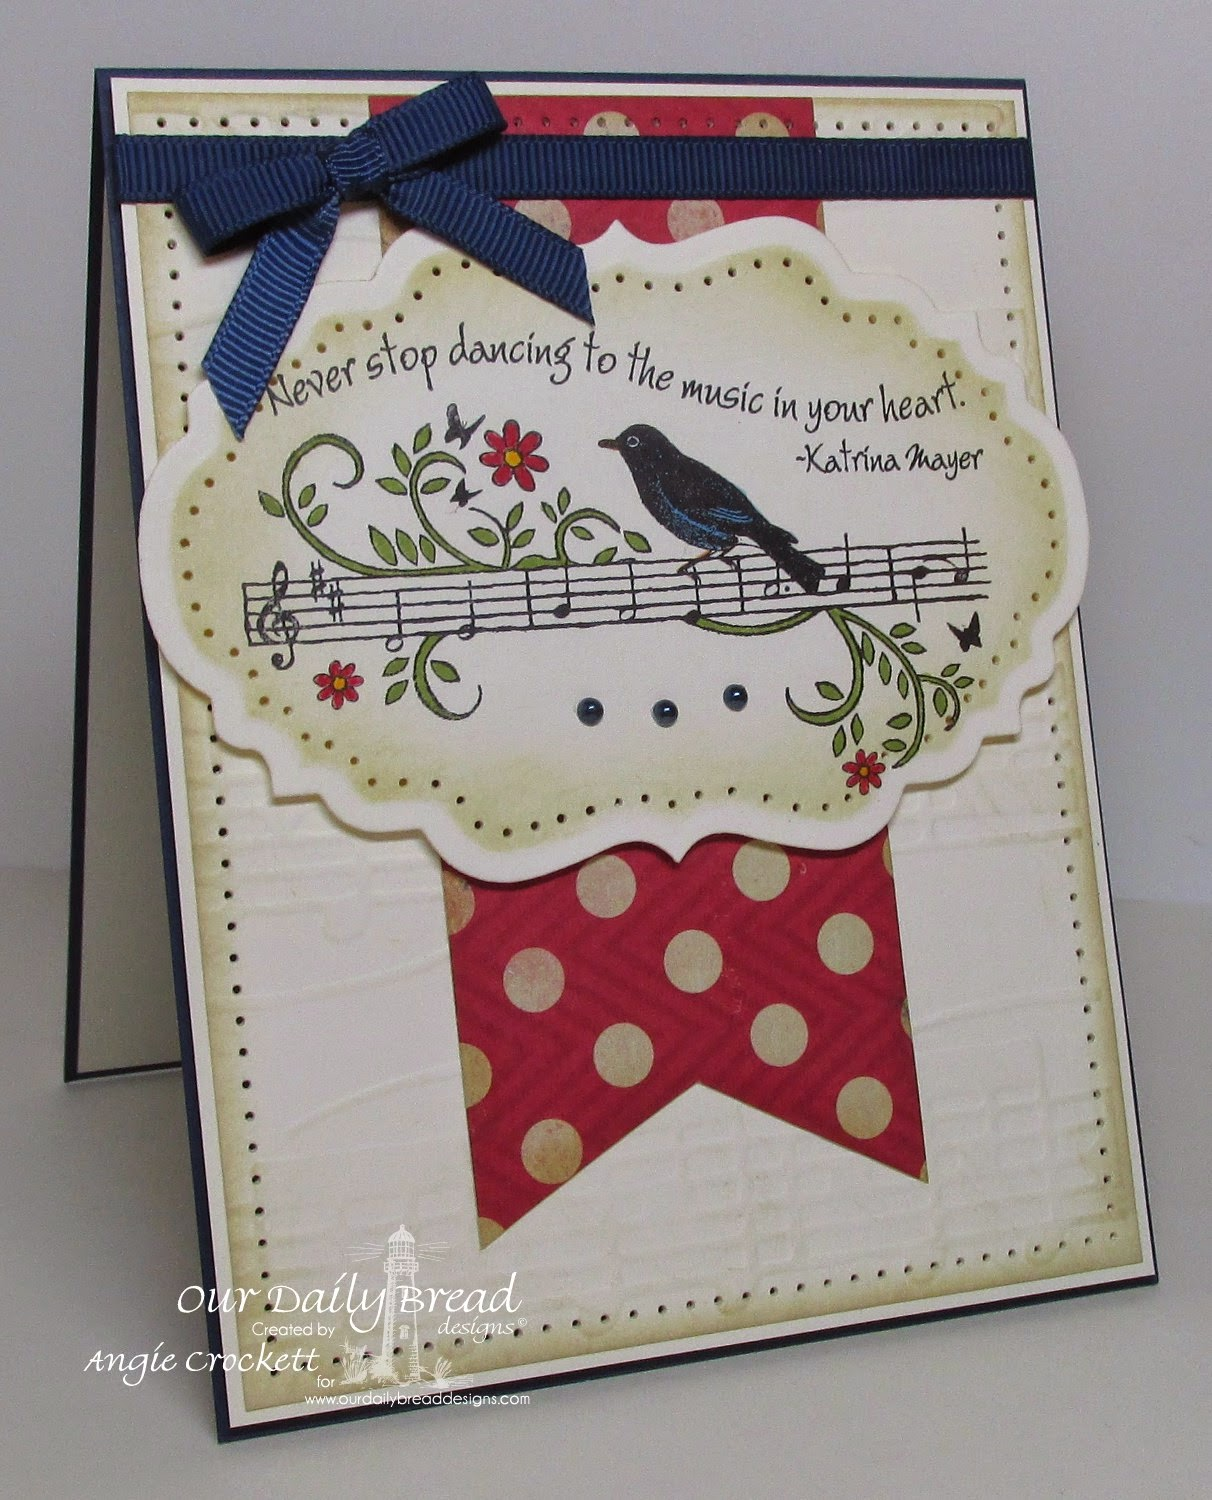 Our Daily Bread designs Music Speaks, ODBD Custom Vintage Labels Dies, Card Designer Angie Crockett